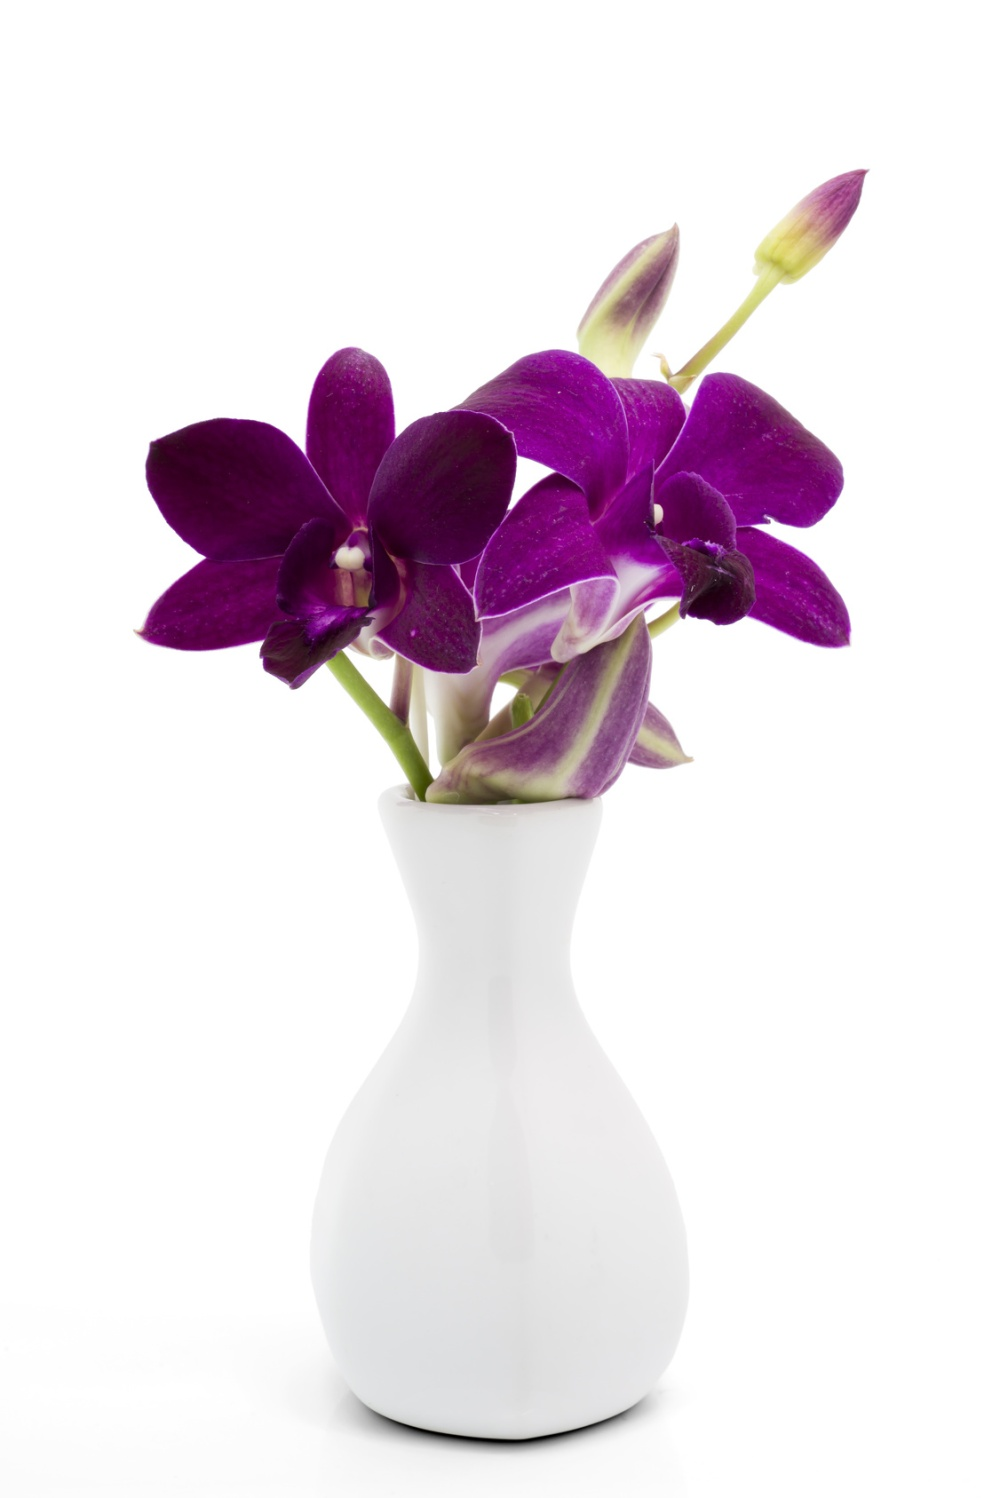 Blossom purple orchid in white vase